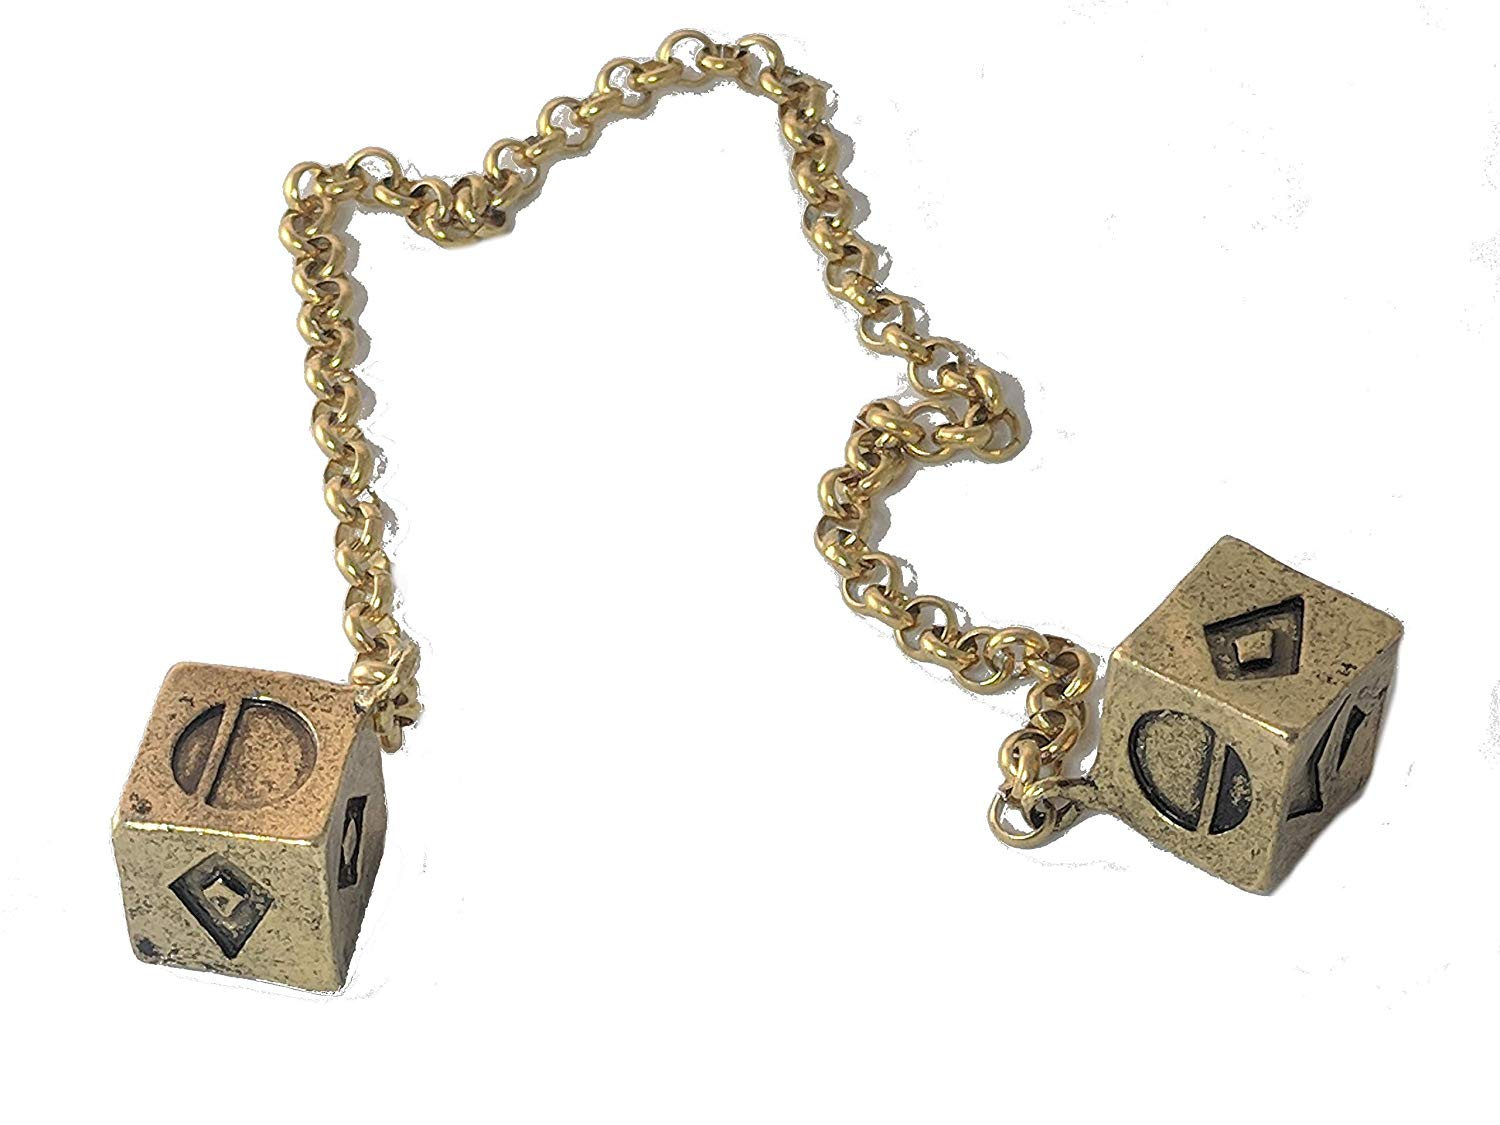 Solo: ASWS Gold Plated Smuggler's Dice 3